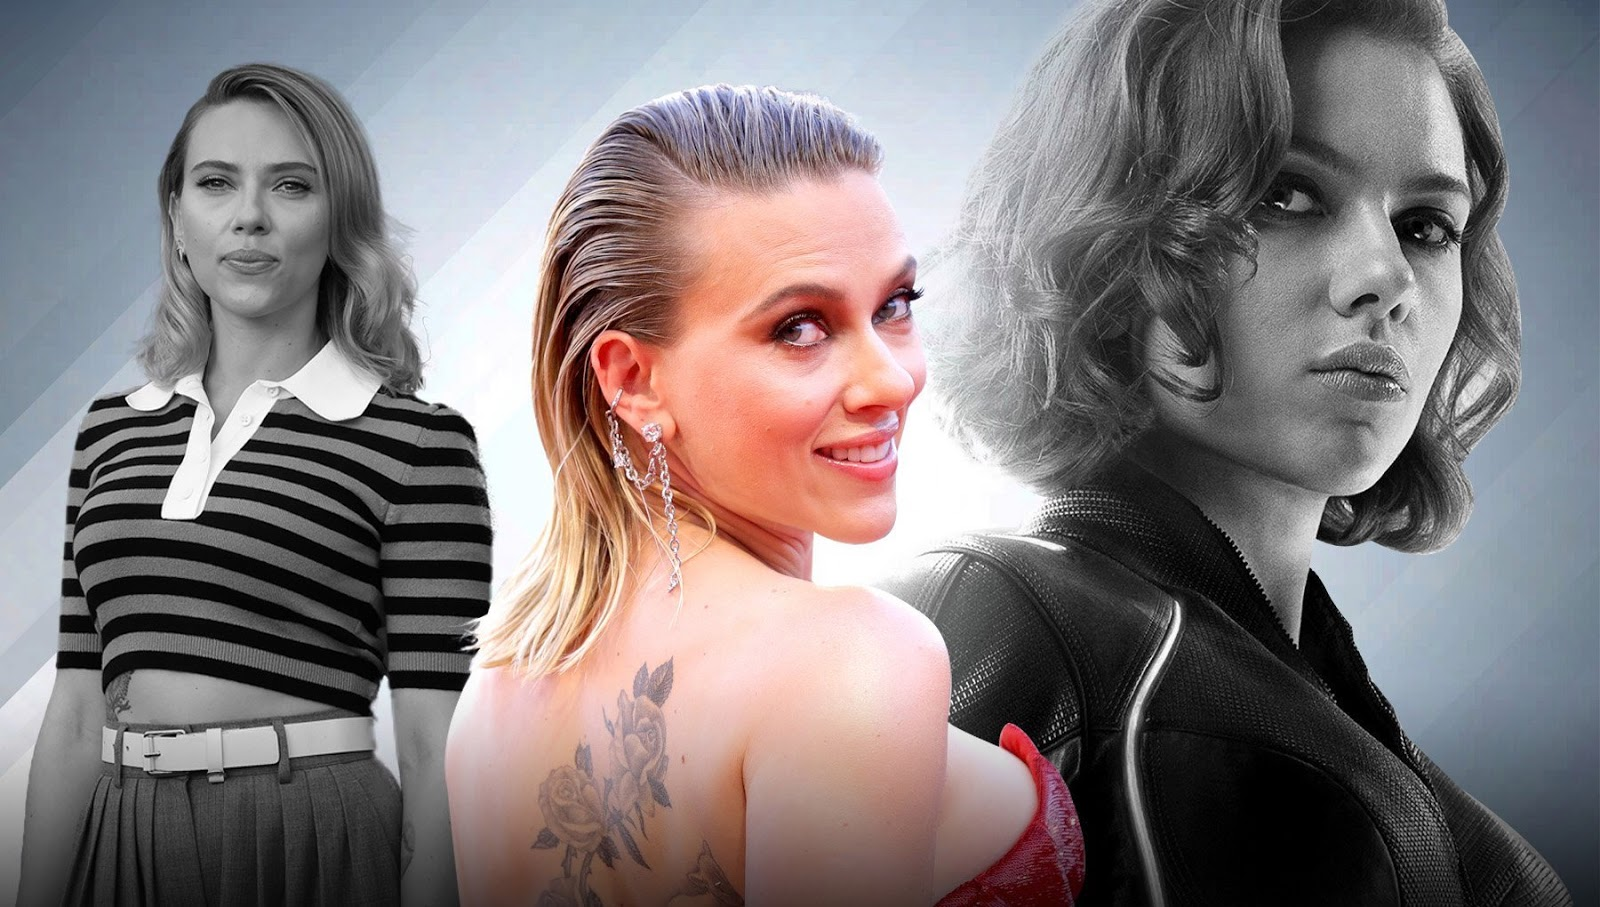 The Top 10 Best Scarlett Johansson Movies of All Time